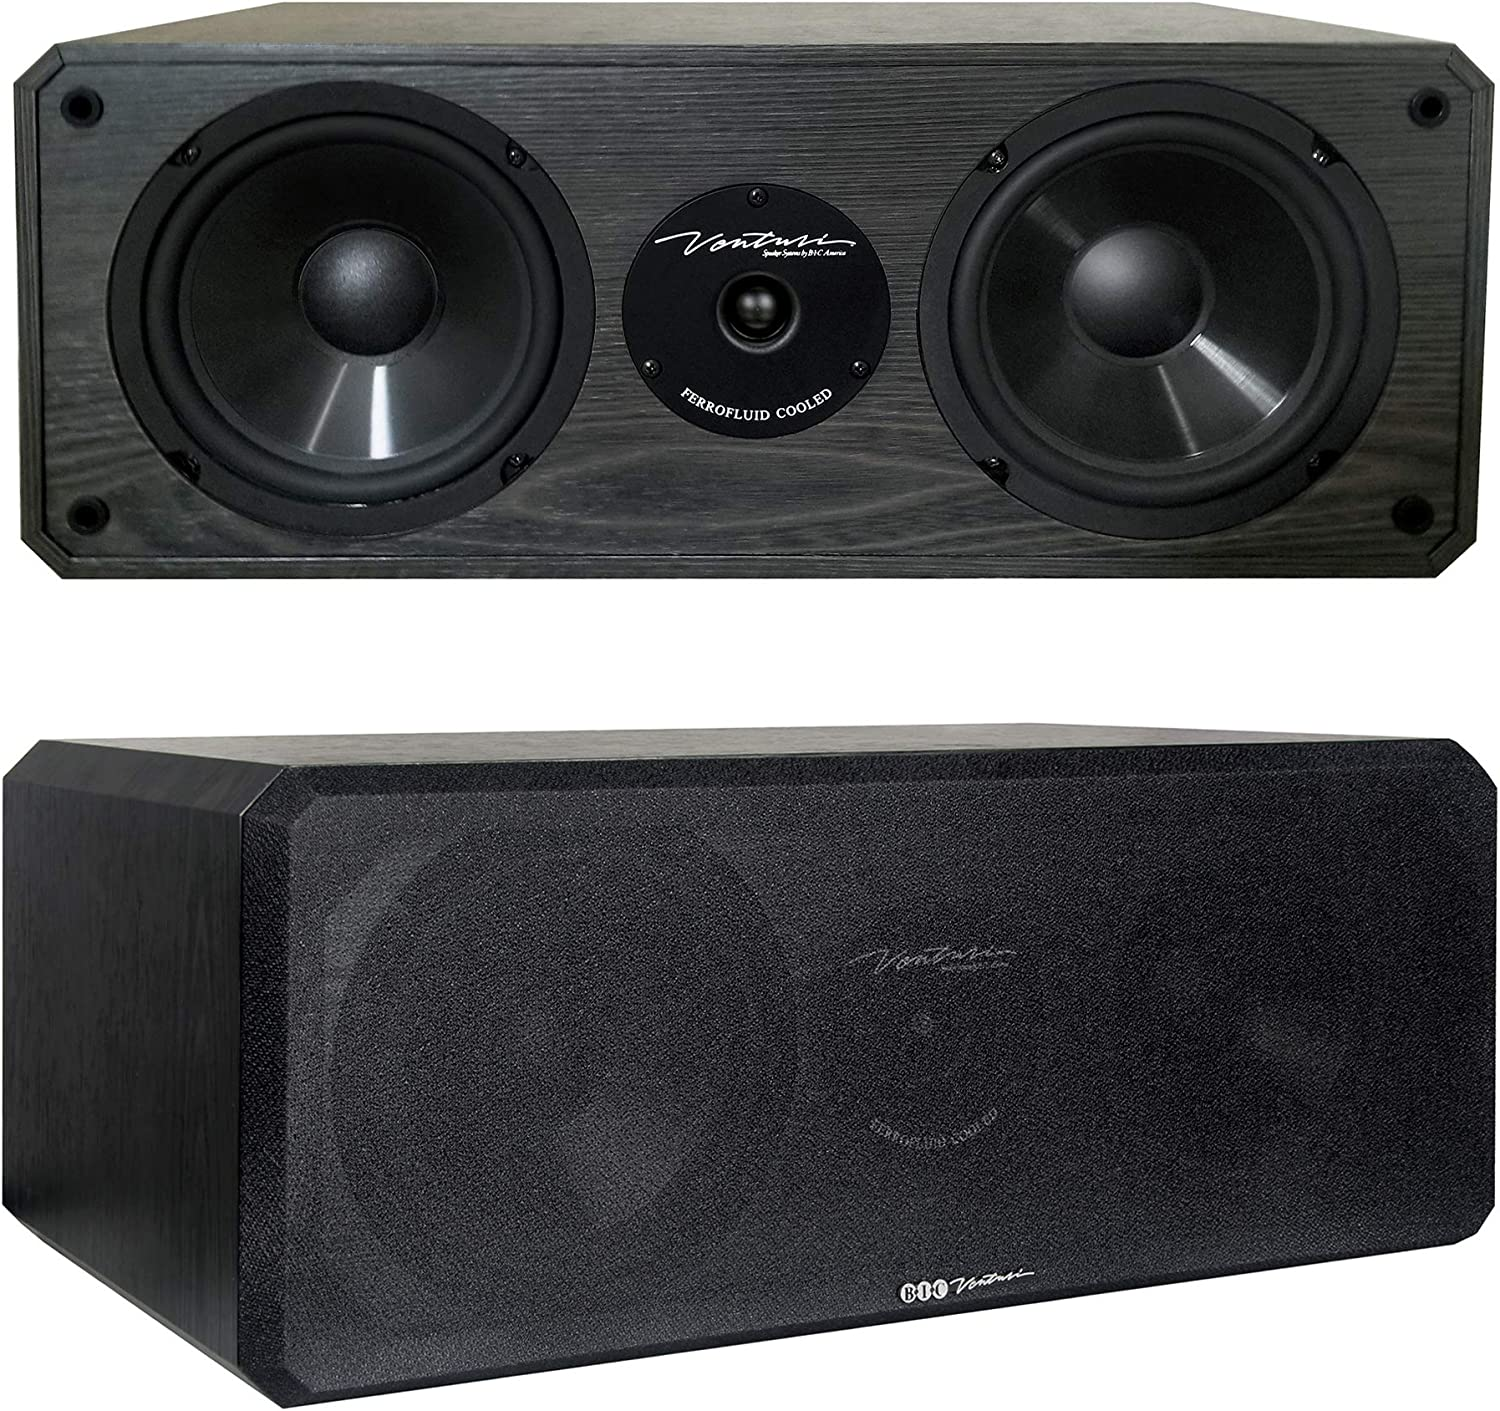 BIC America DV-62CLRS Popularity 6-Inch Center Max 82% OFF Channel Speaker 2-Way